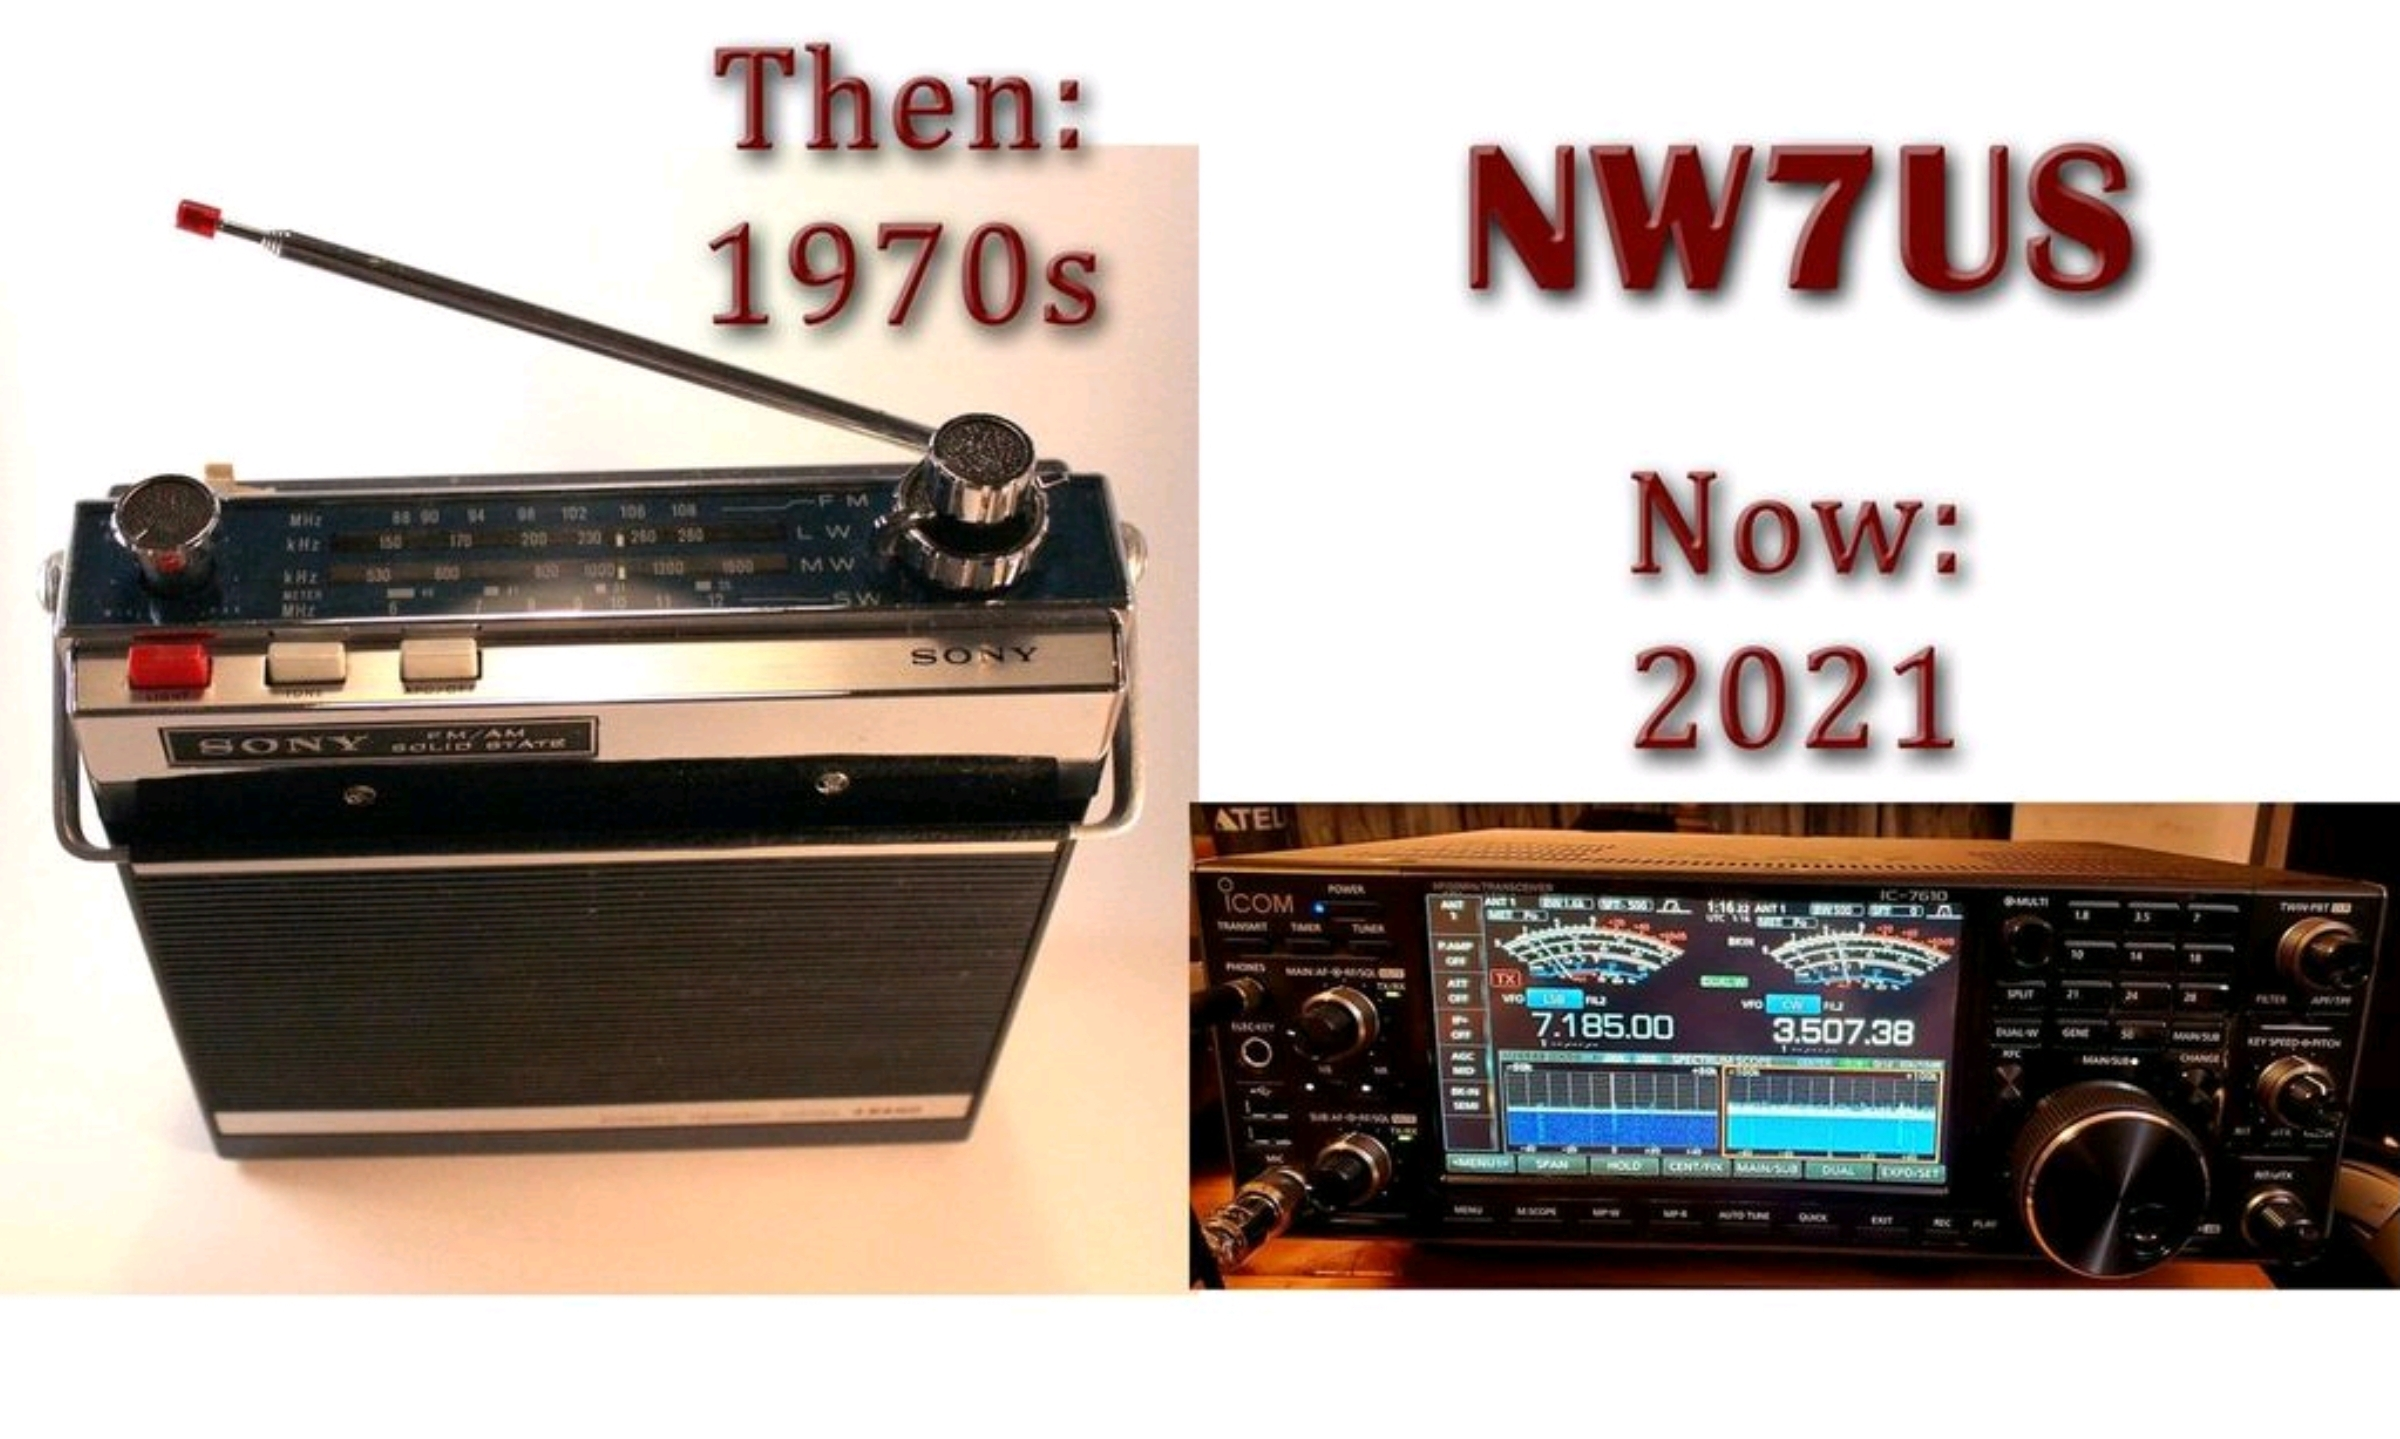 ThenAndNow